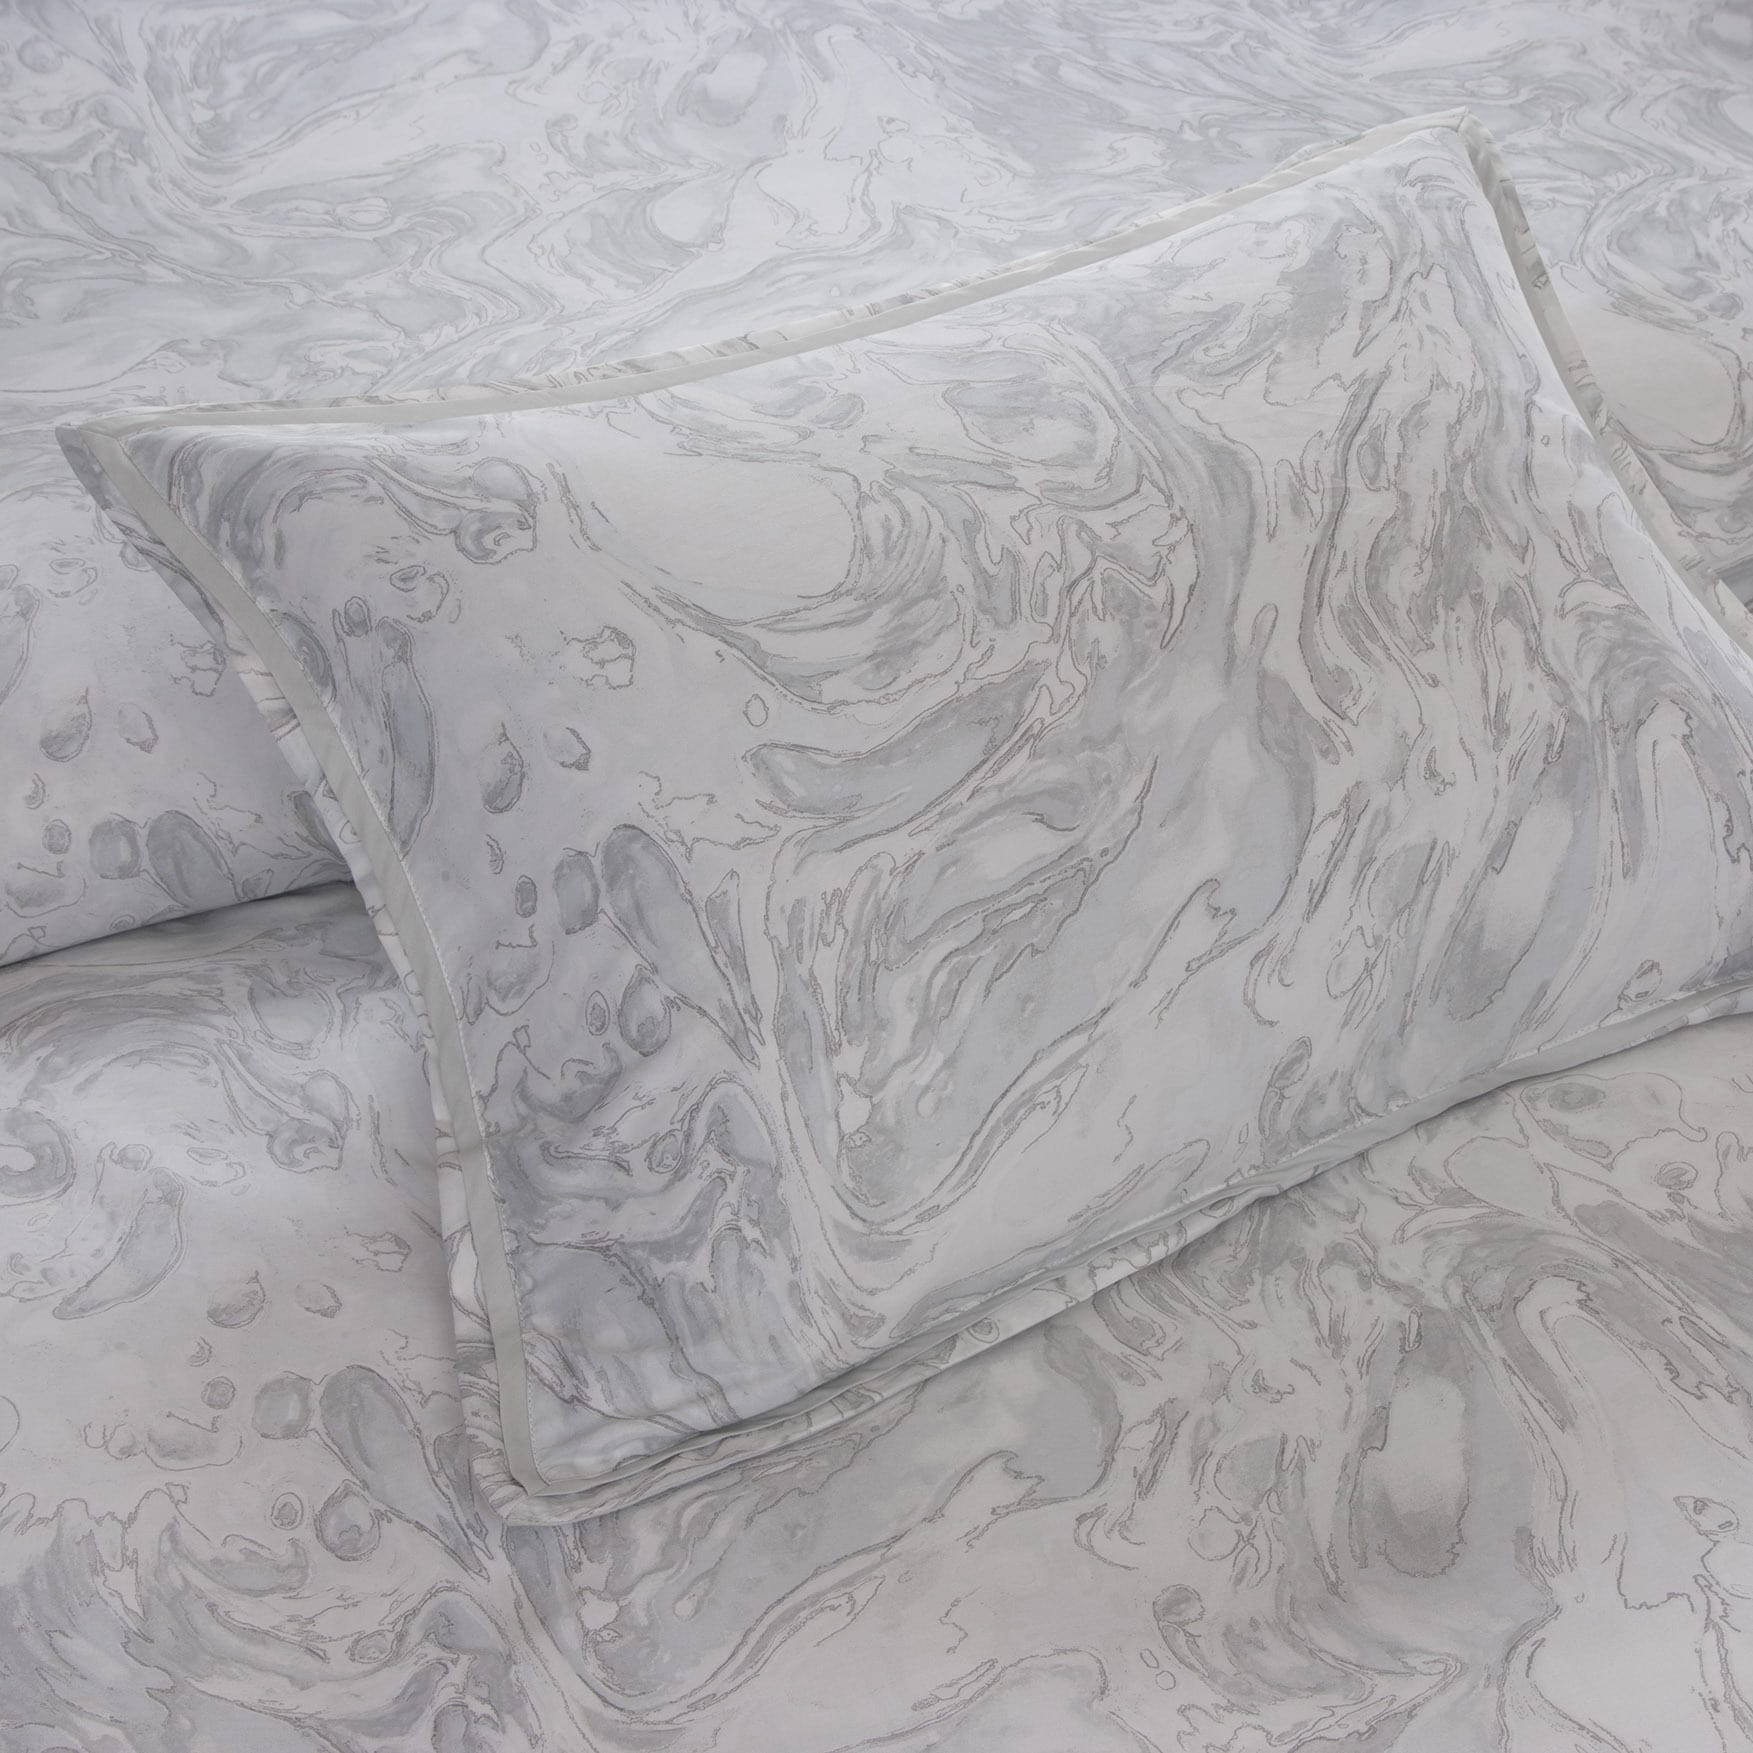 74ca9e692a Shop Metropolitan Home Marble Cotton 3-piece Duvet Cover Set - Free  Shipping Today - Overstock - 10583396